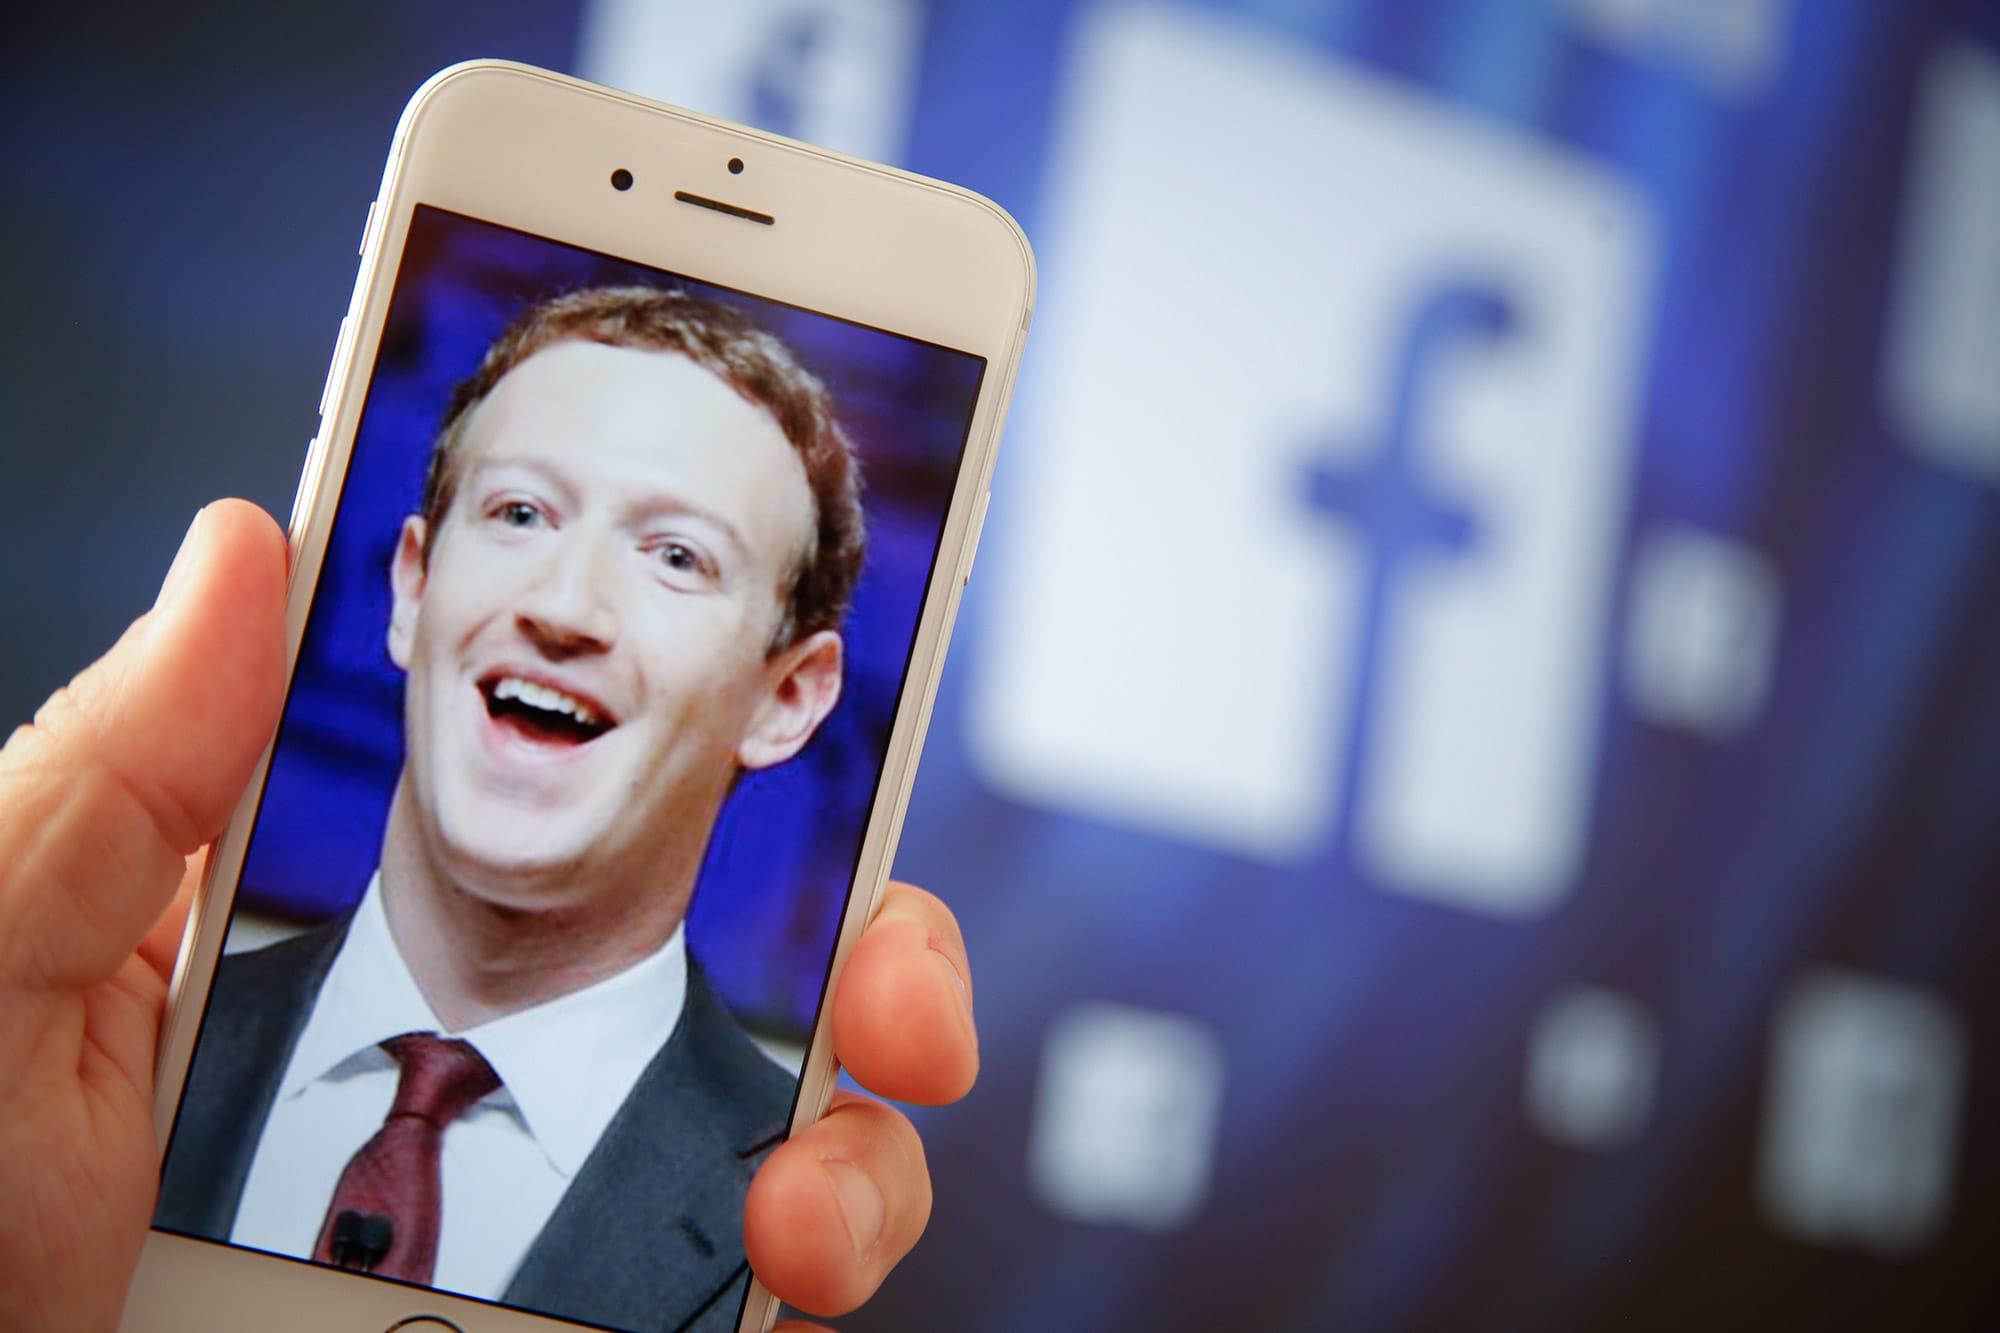 As Facebook turns 17, traders project where the stock heads next